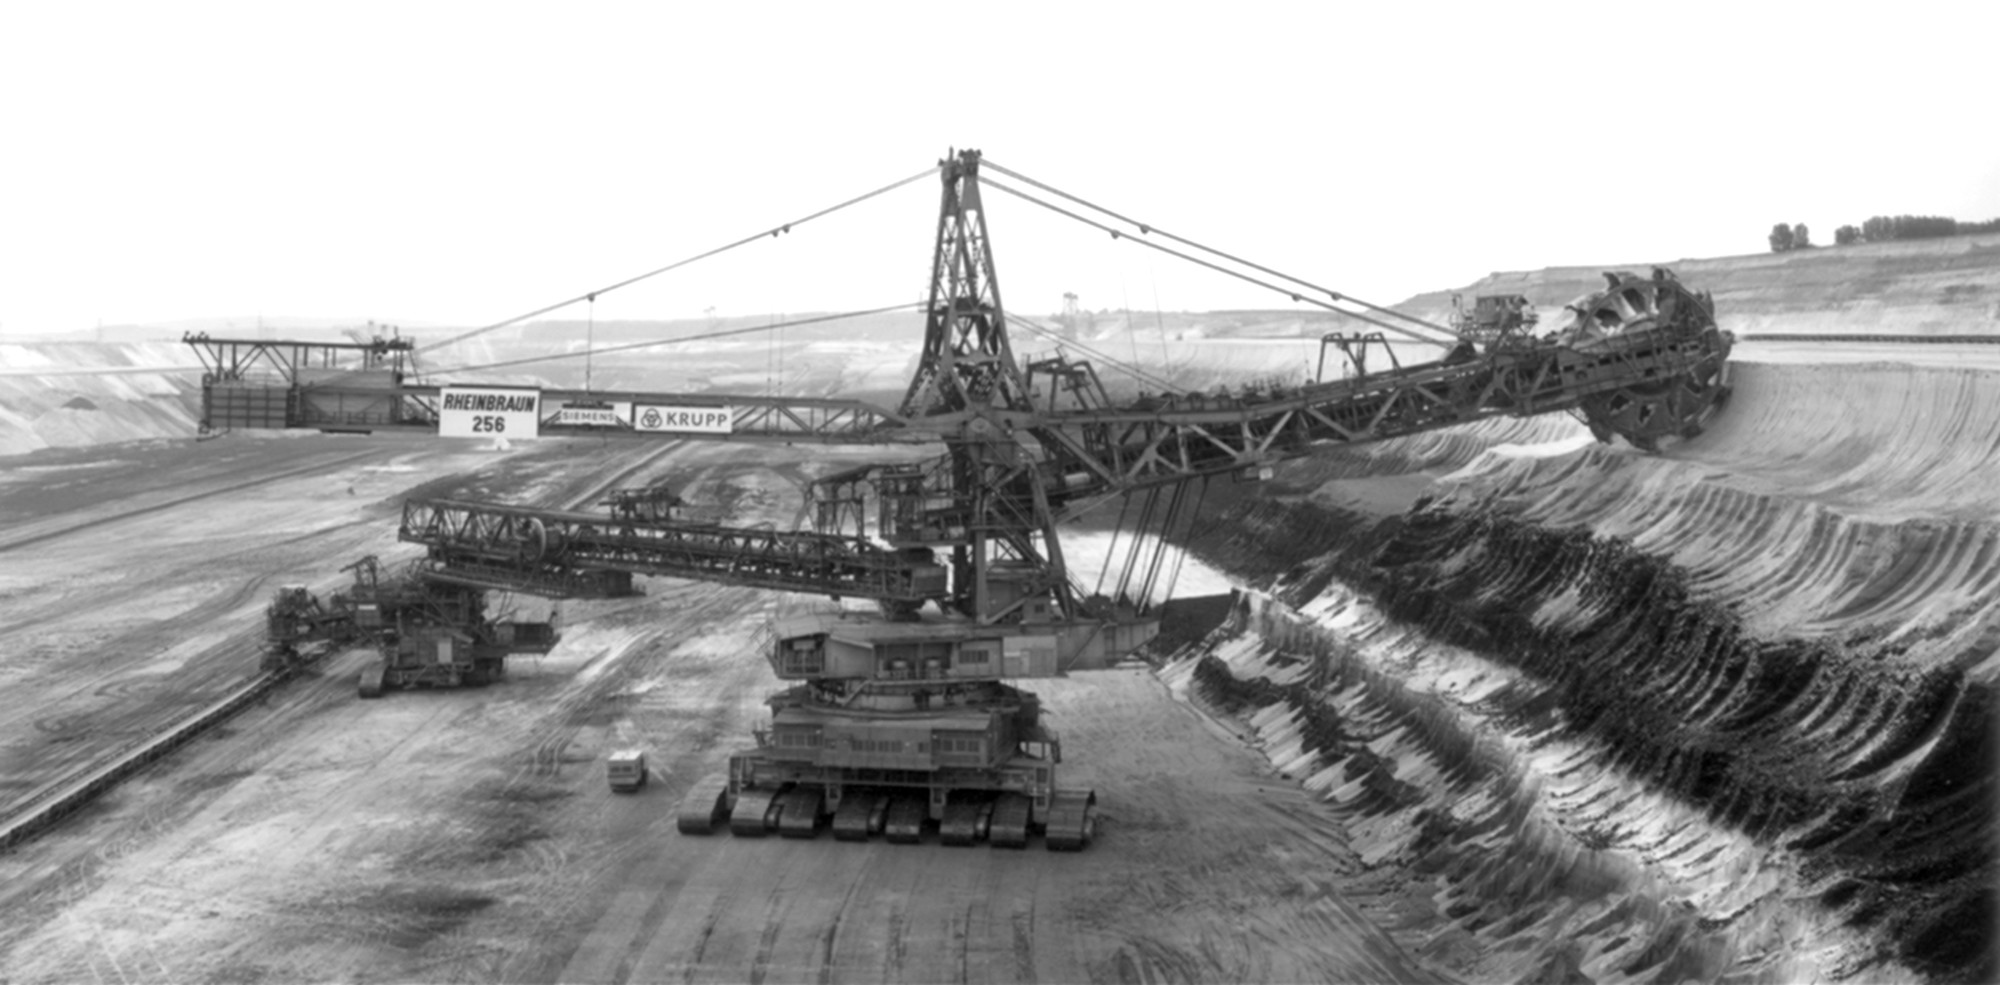 "<span class=""link fancybox-details-link""><a href=""/artists/128-claudia-fahrenkemper/works/35246-claudia-fahrenkemper-shovel-wheel-excavator-256-lignite-mine-garzweiler-germany-1991/"">View Detail Page</a></span><div class=""artist""><strong>Claudia Fährenkemper</strong></div> b. 1959 <div class=""title""><em>Shovel Wheel Excavator 256, Lignite Mine, Garzweiler, Germany</em>, 1991</div> <div class=""signed_and_dated"">From the series ""Mining Machinery""<br /> Signed, titled, dated, and editioned, in pencil, au verso<br /> Printed in 2019</div> <div class=""medium"">Gelatin silver print</div> <div class=""dimensions"">10 ½ x 19 ¾ inch (26.67 x 50.17 cm)</div> <div class=""edition_details"">Edition of 8 + 3 APs (#5/8)</div>"